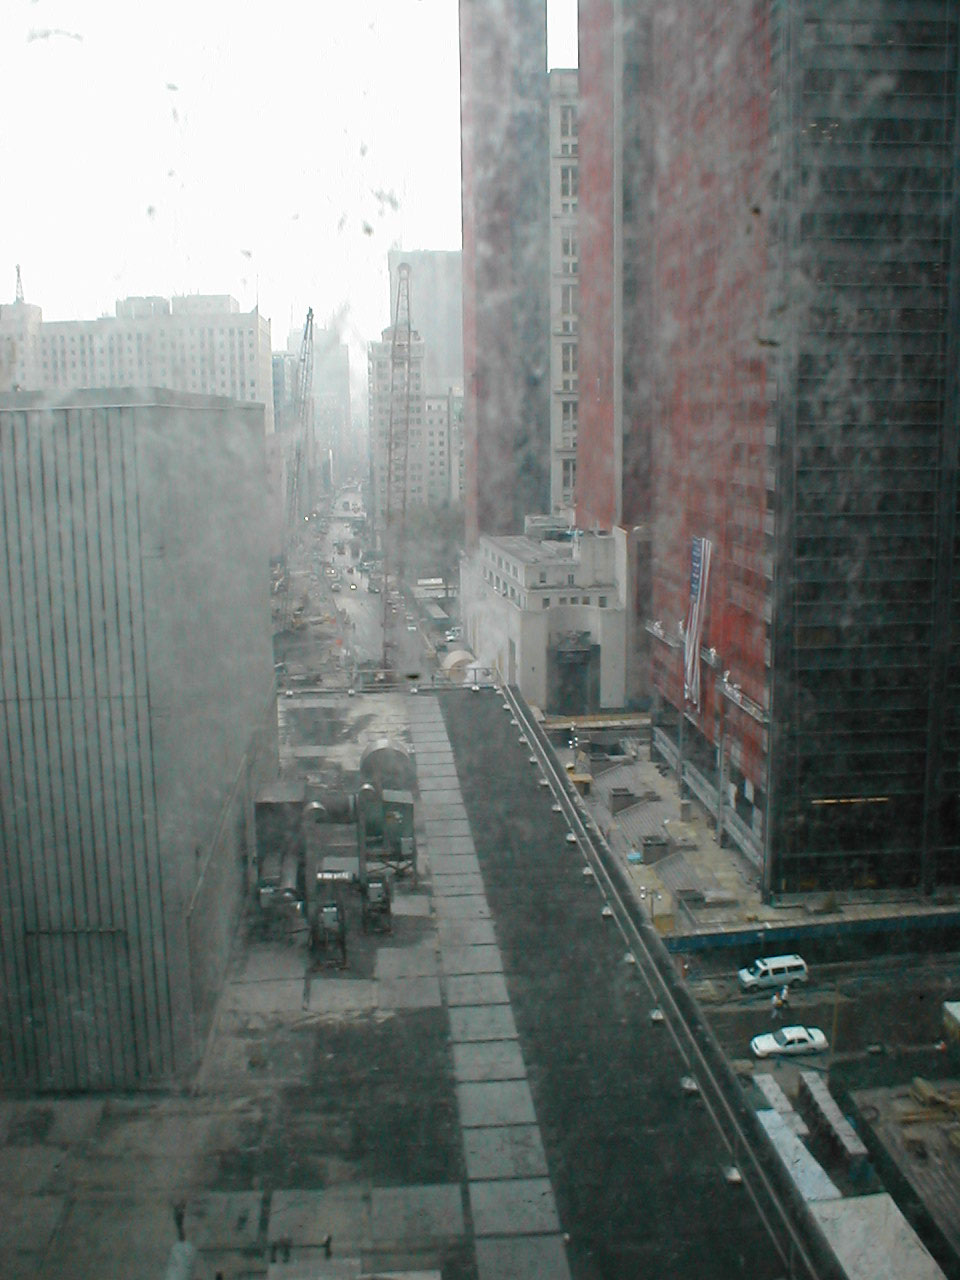 Another northern view